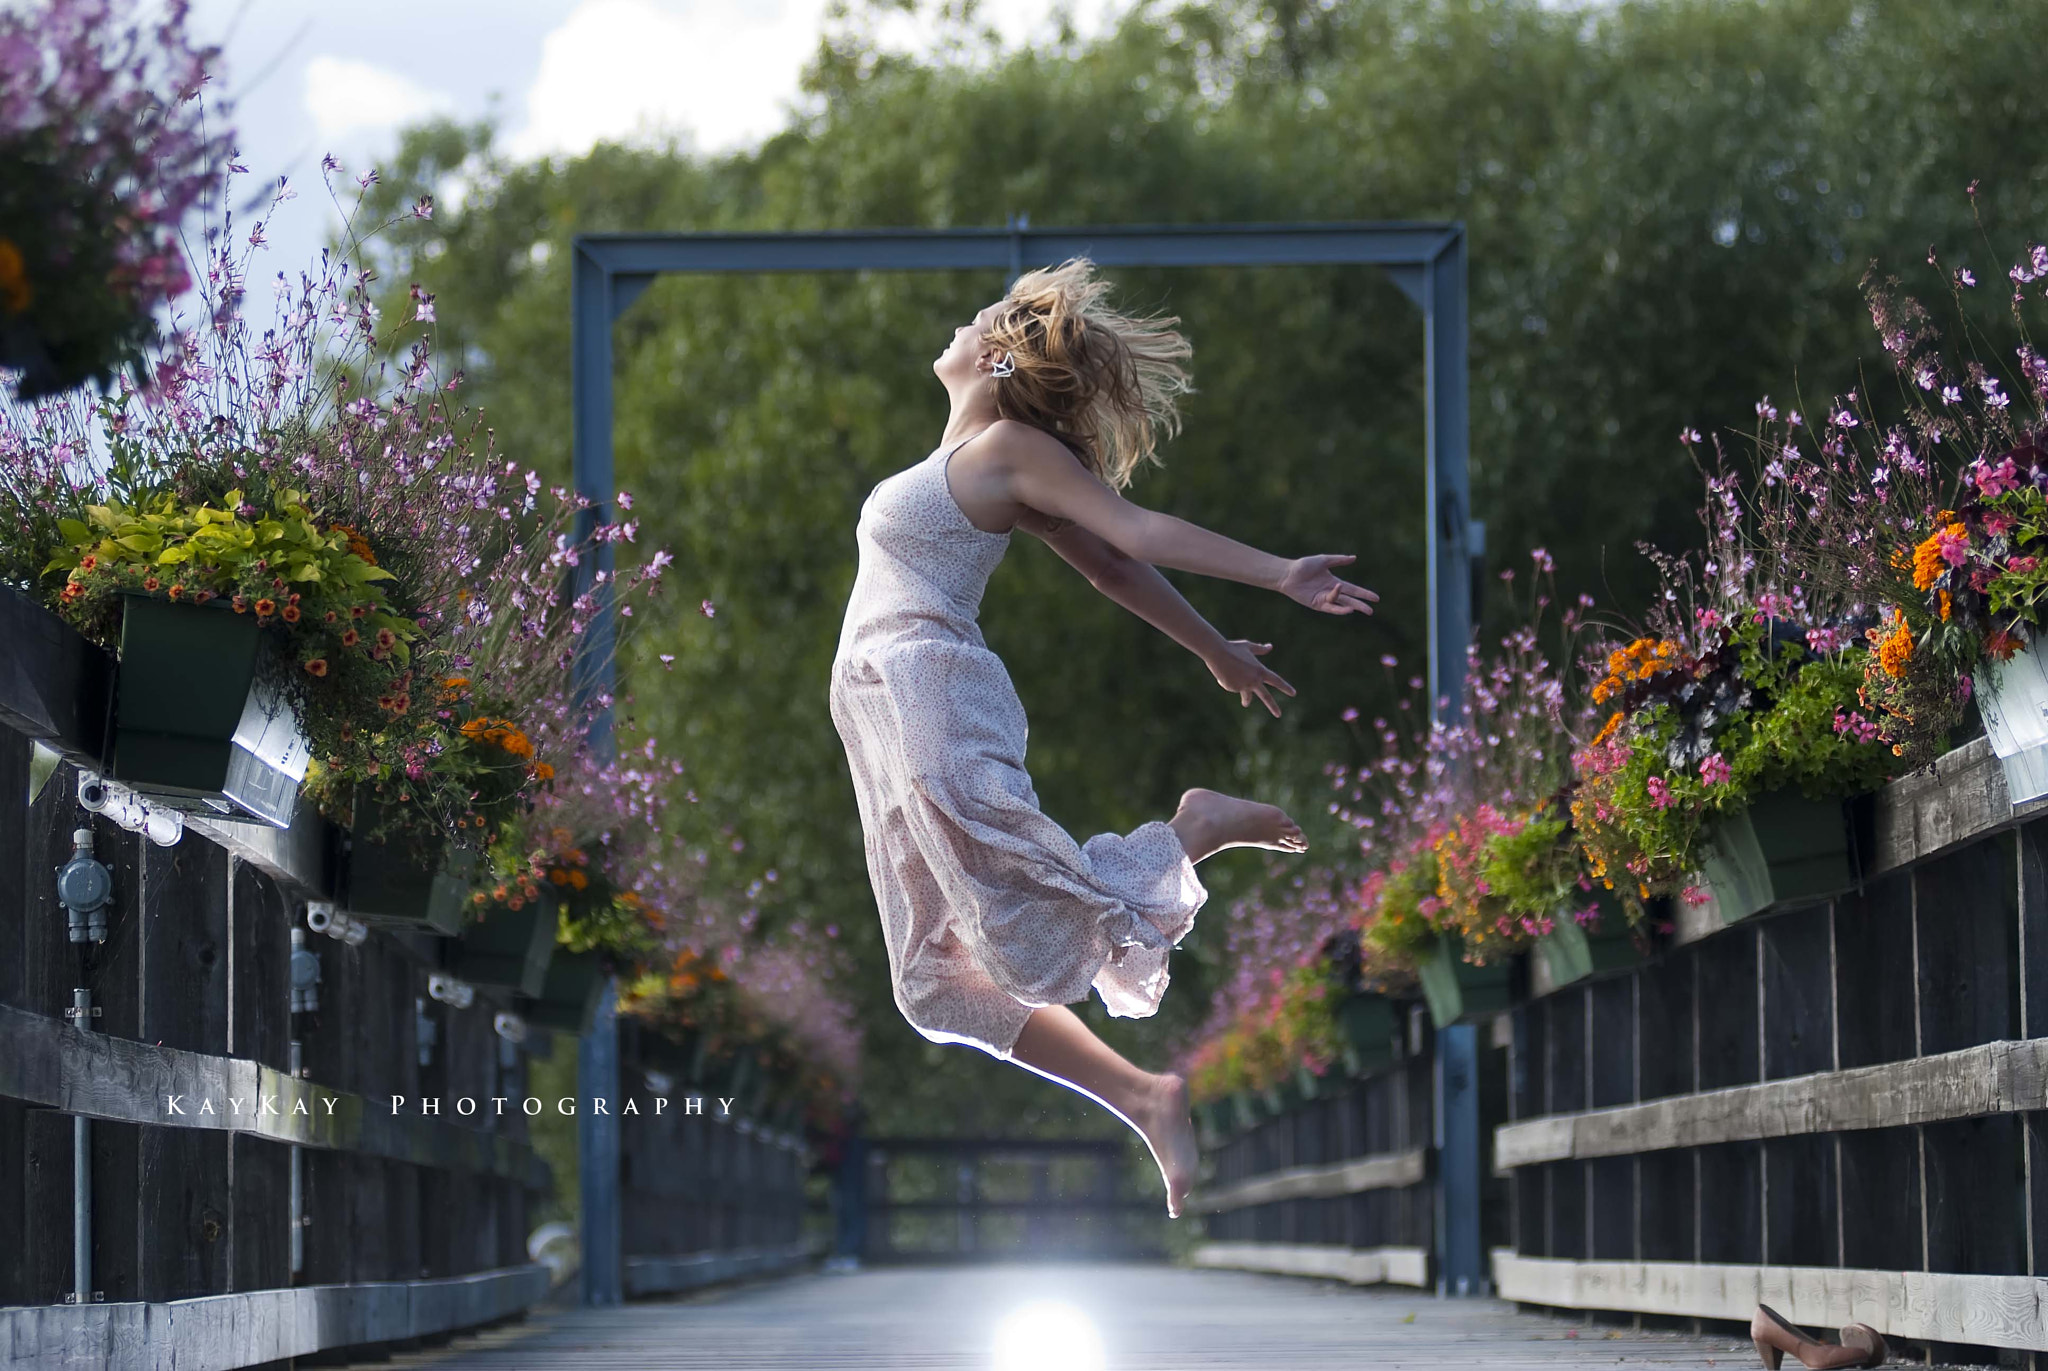 Photograph joy of freedom by kaykay Photography on 500px